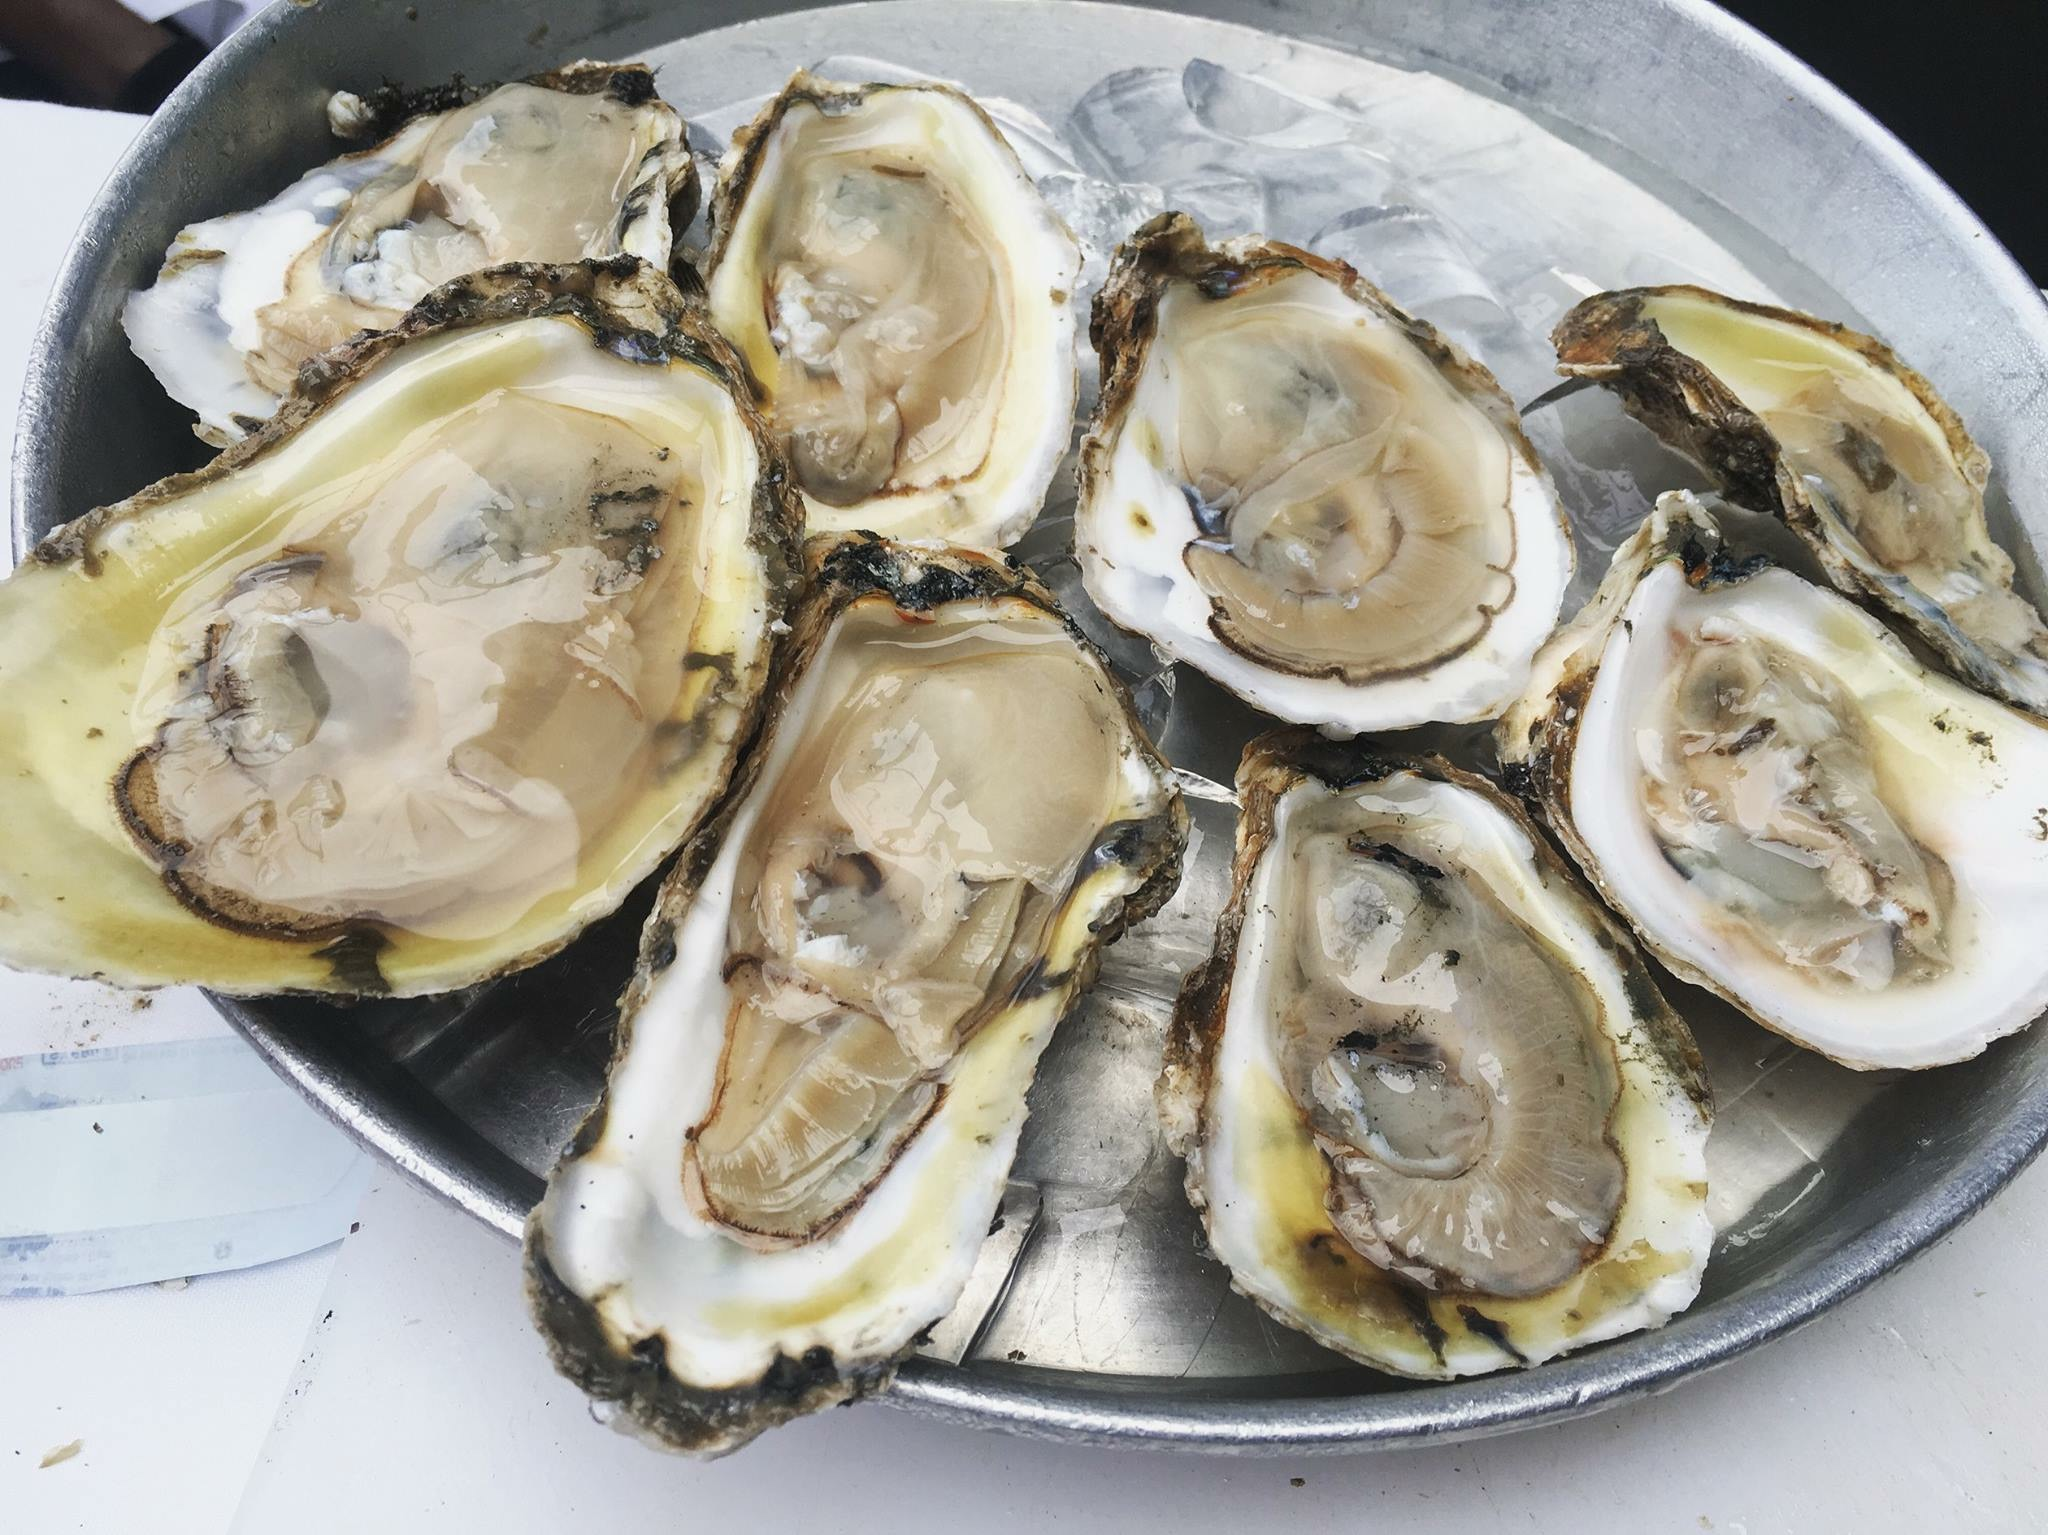 Healthy Chesapeake Bay Seafood: Oysters!